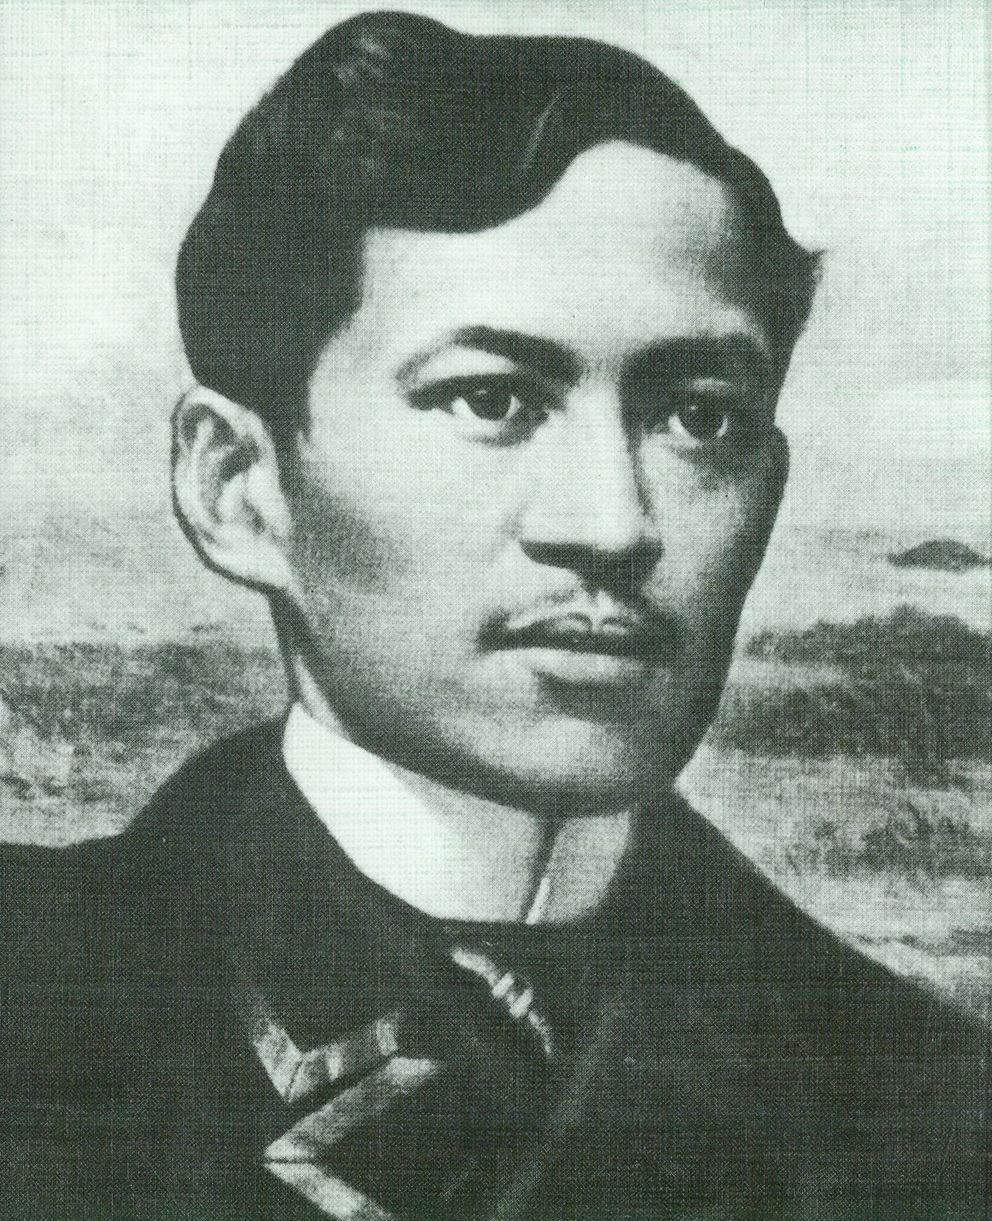 José Rizal, der Nationalheld der Filipinos